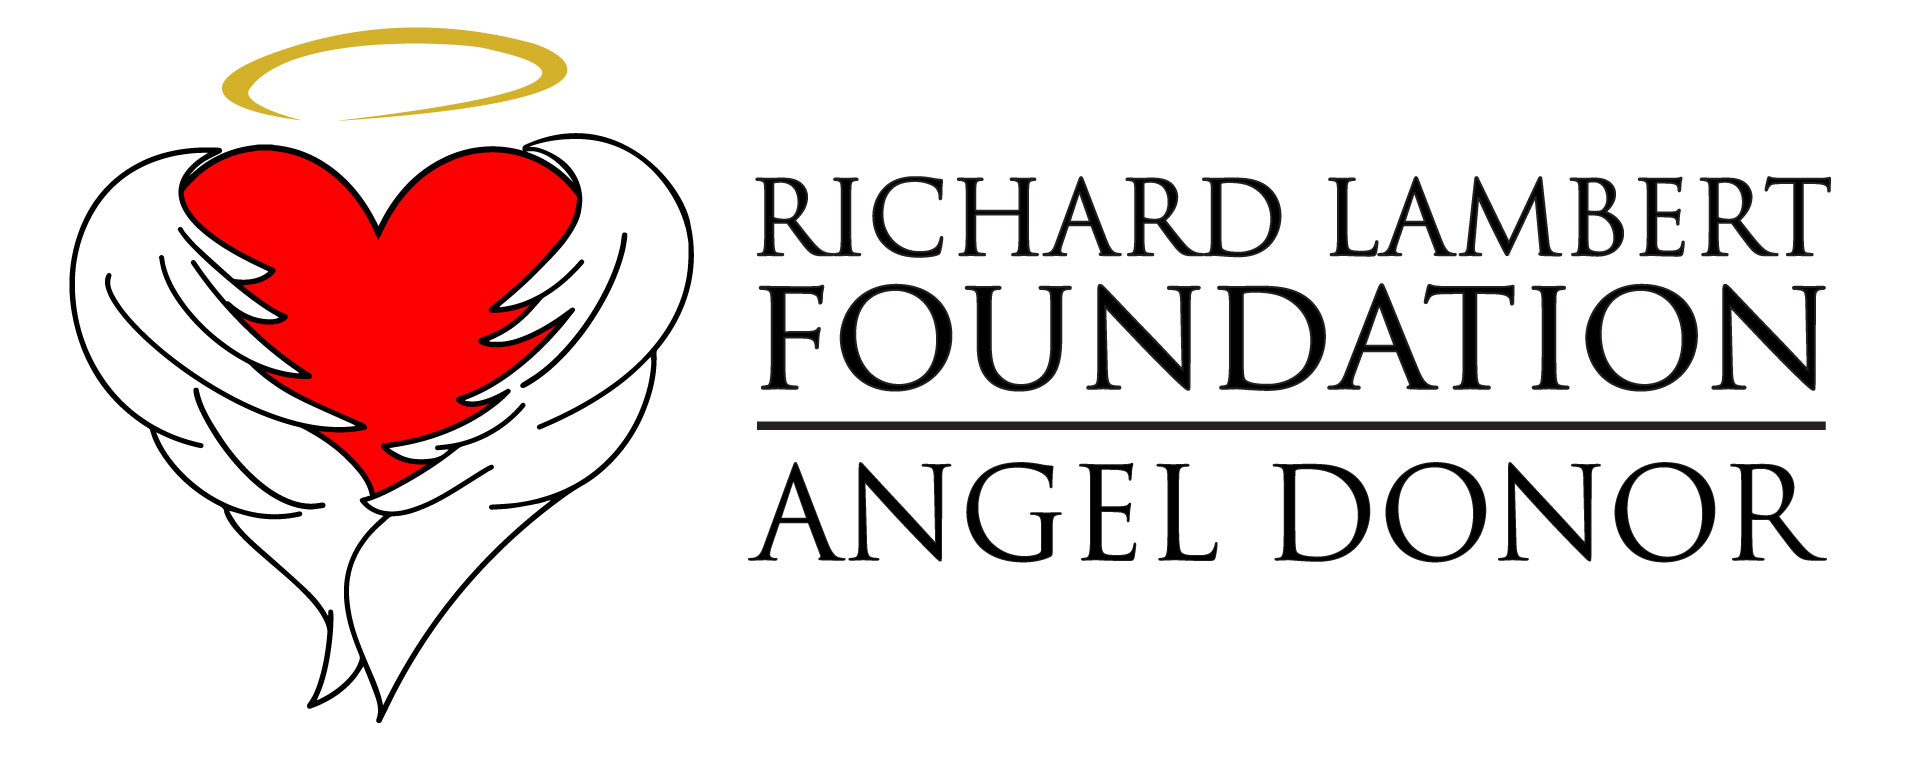 Angel Donor Logo.jpg